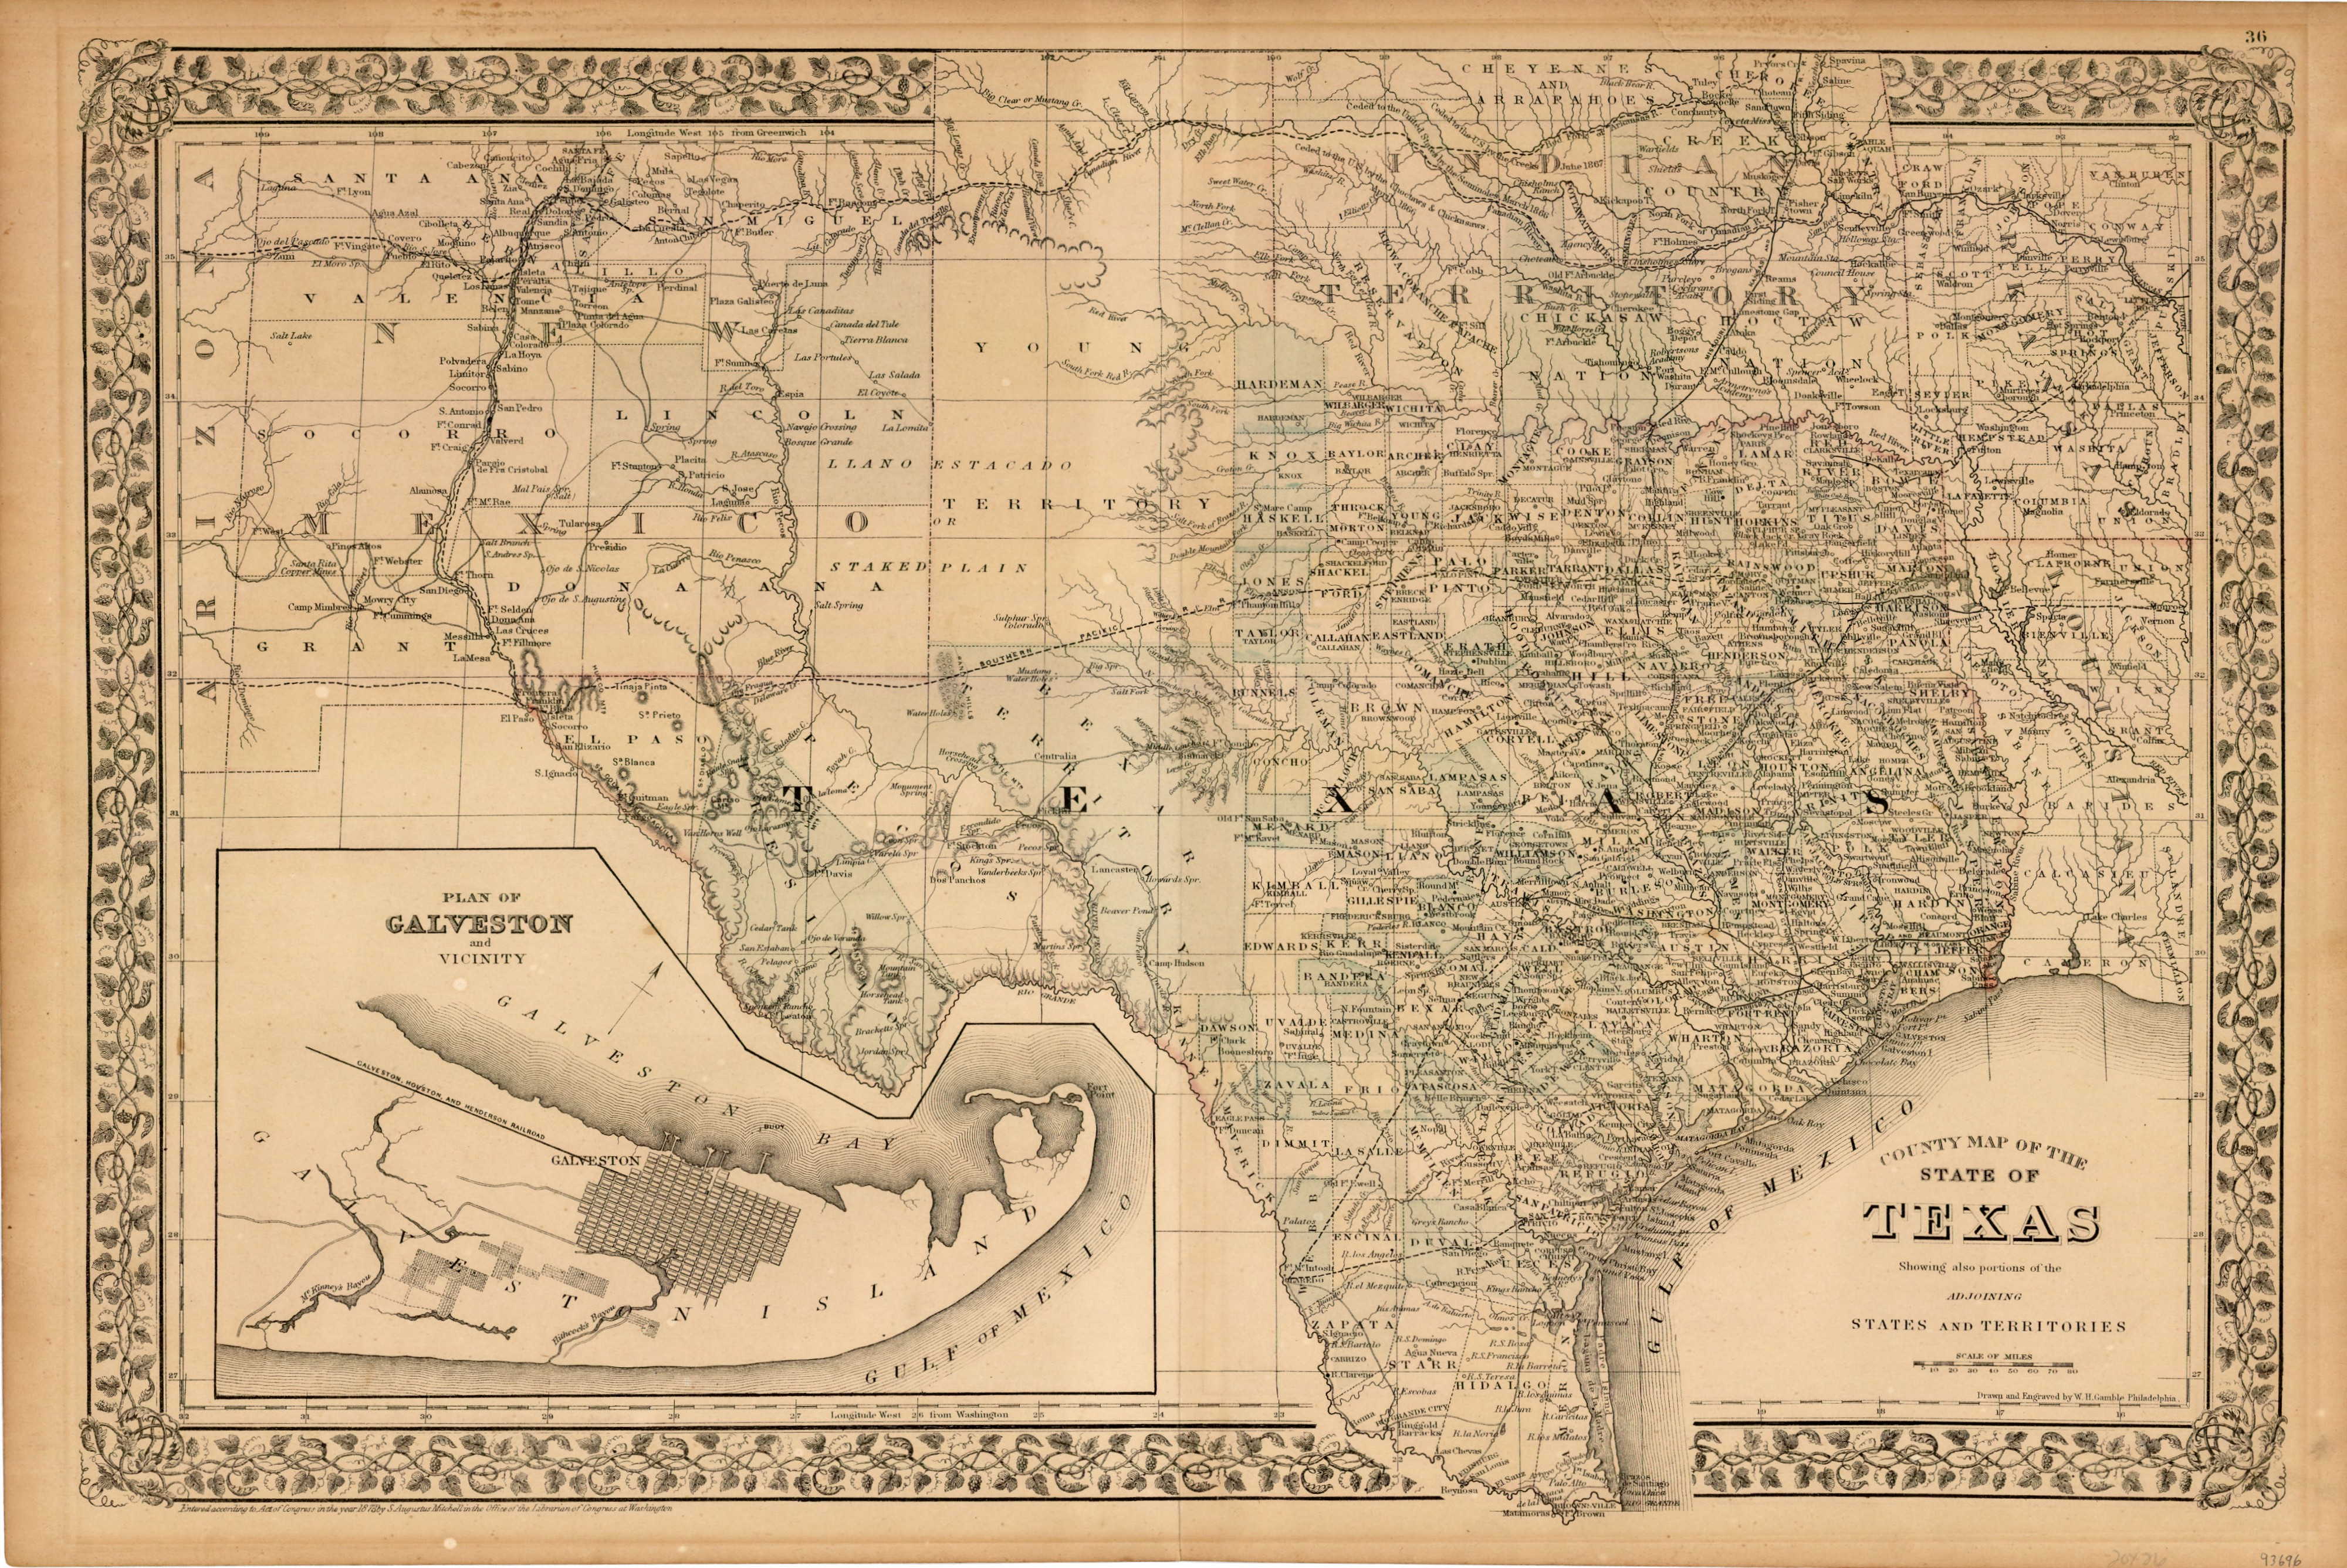 State Of Texas Counties Map.County Map Of The State Of Texas 1873 By W H Gamble